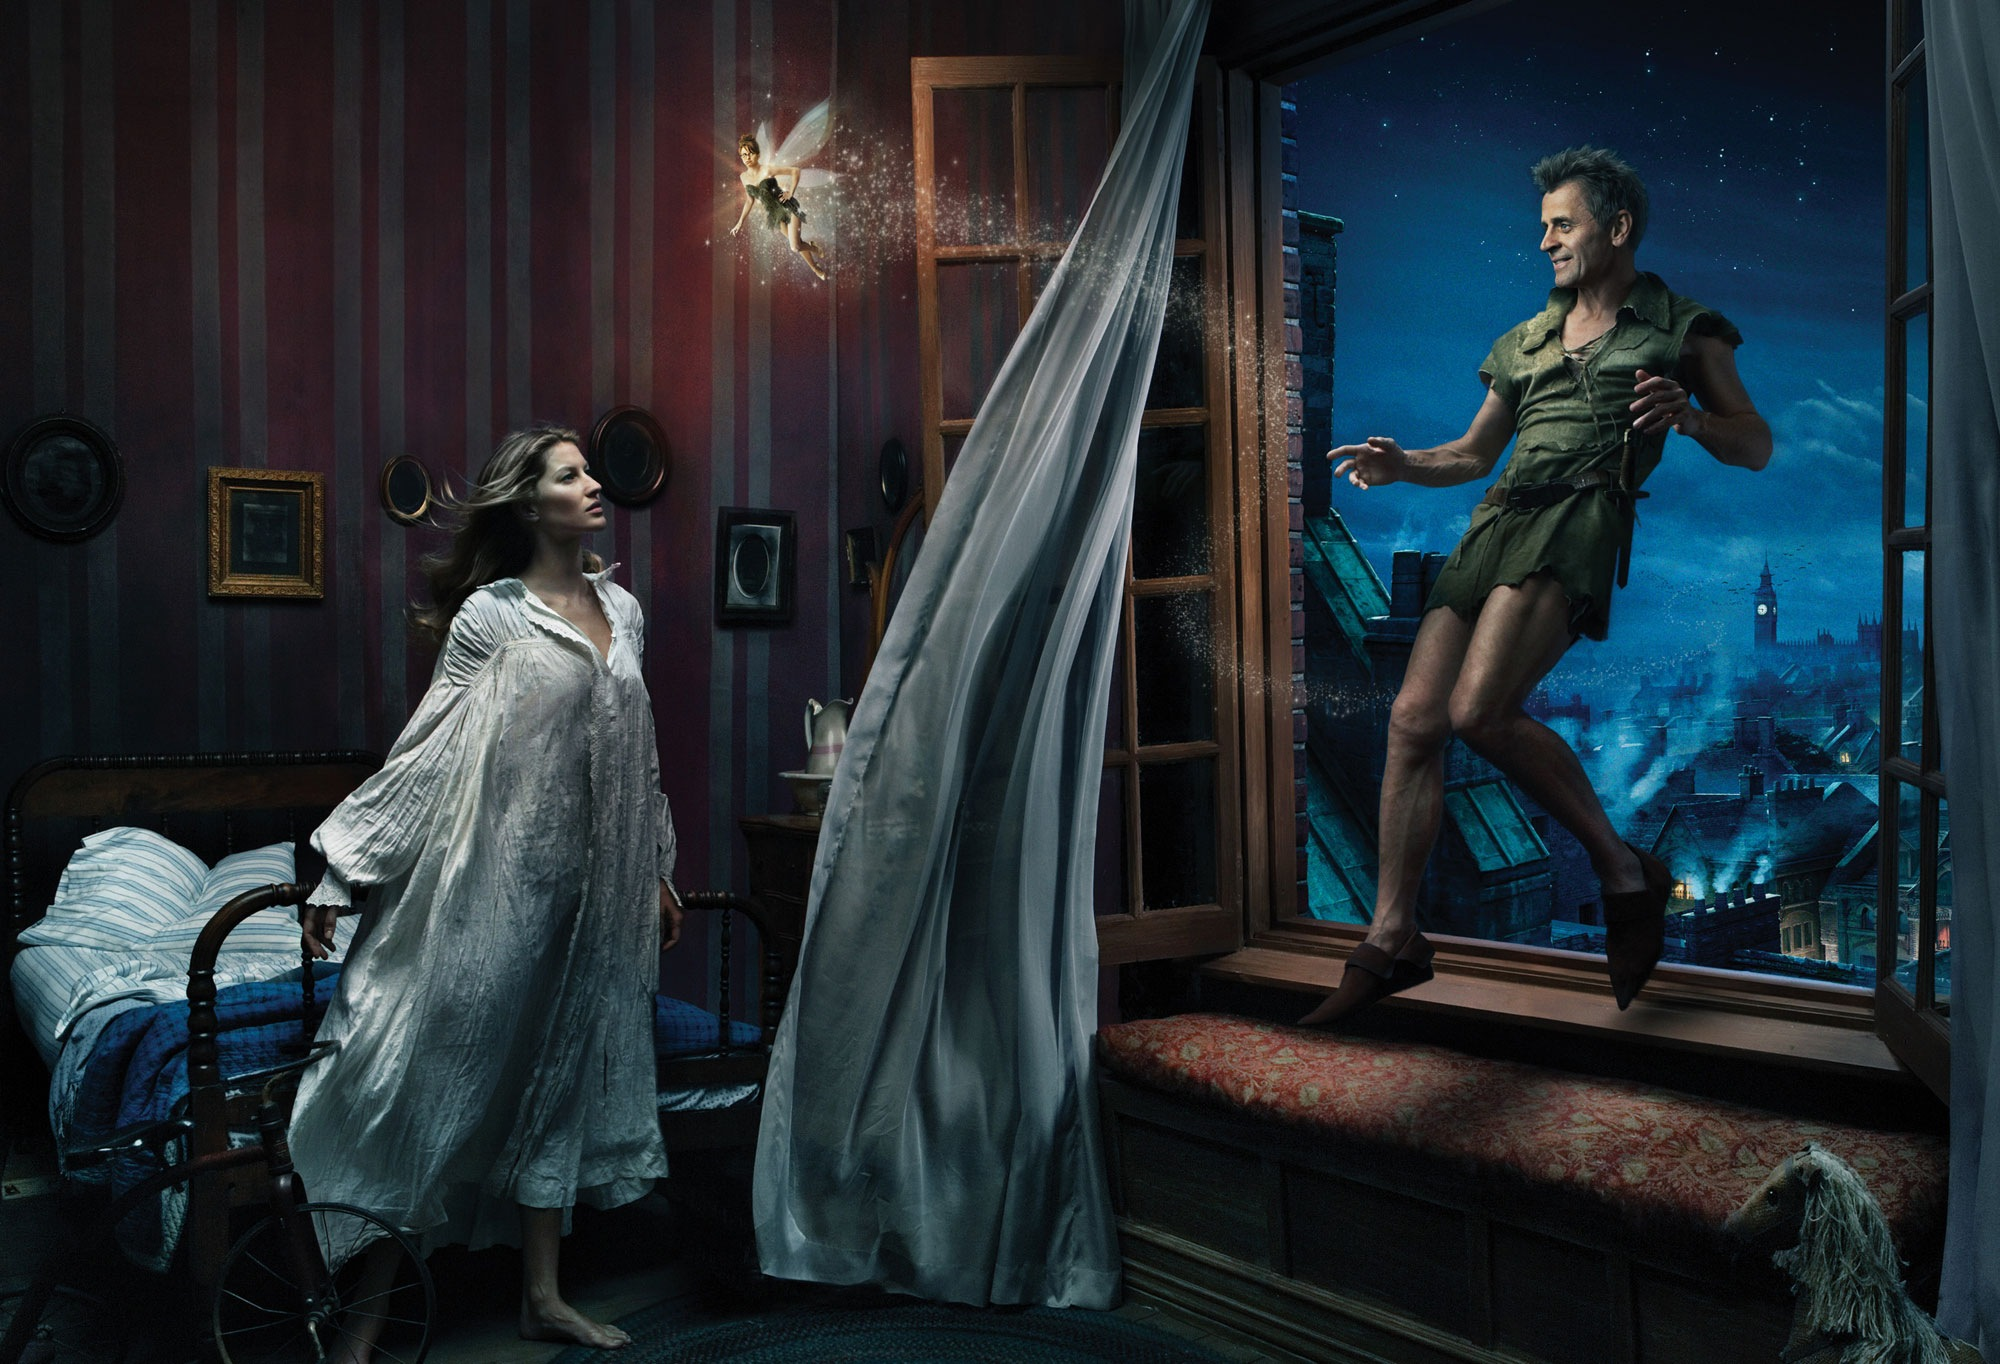 12 best peter pan images on pinterest peter o toole disney 12 best peter pan images on pinterest peter o toole disney cruise plan and disney magic